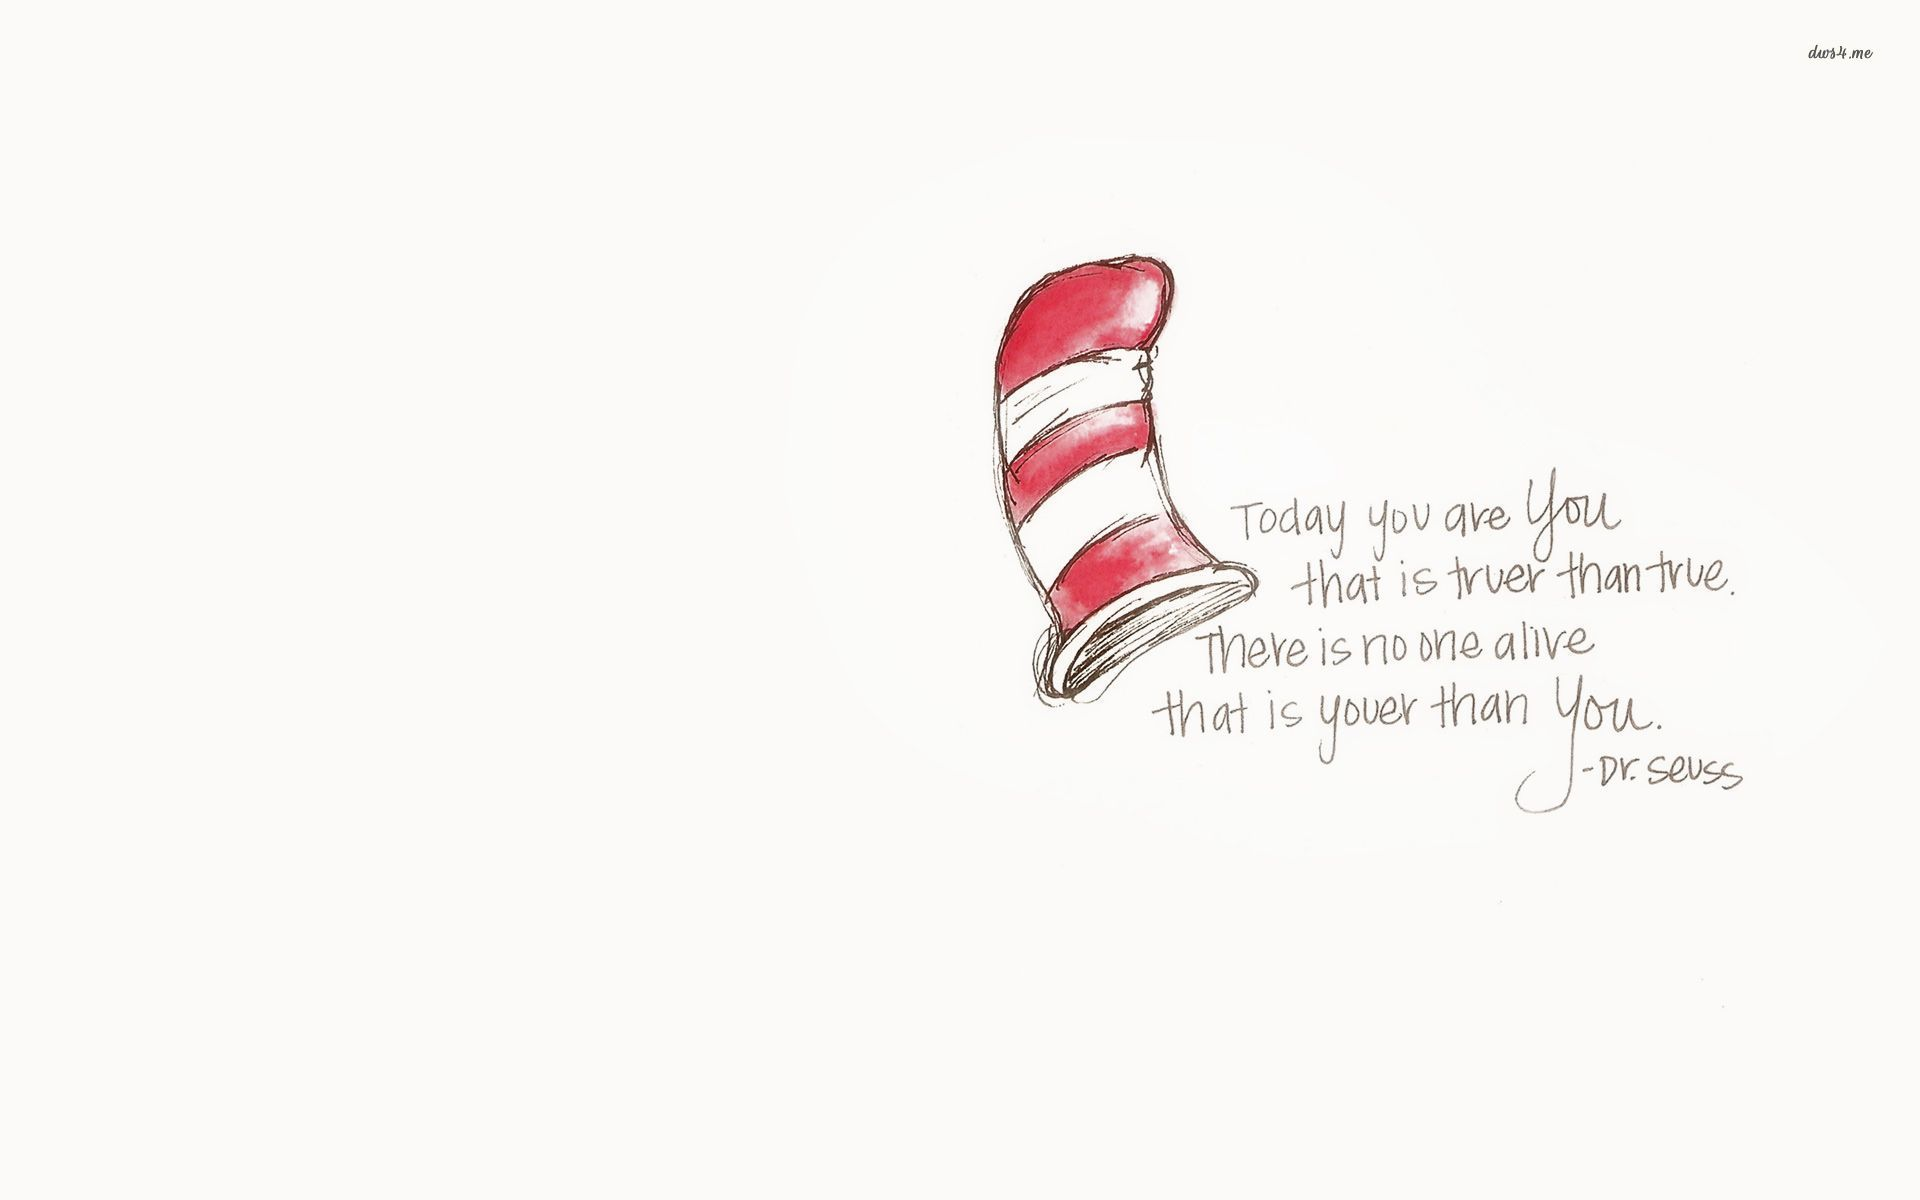 Dr Seuss quote wallpaper   Quote wallpapers   22741 1920x1200